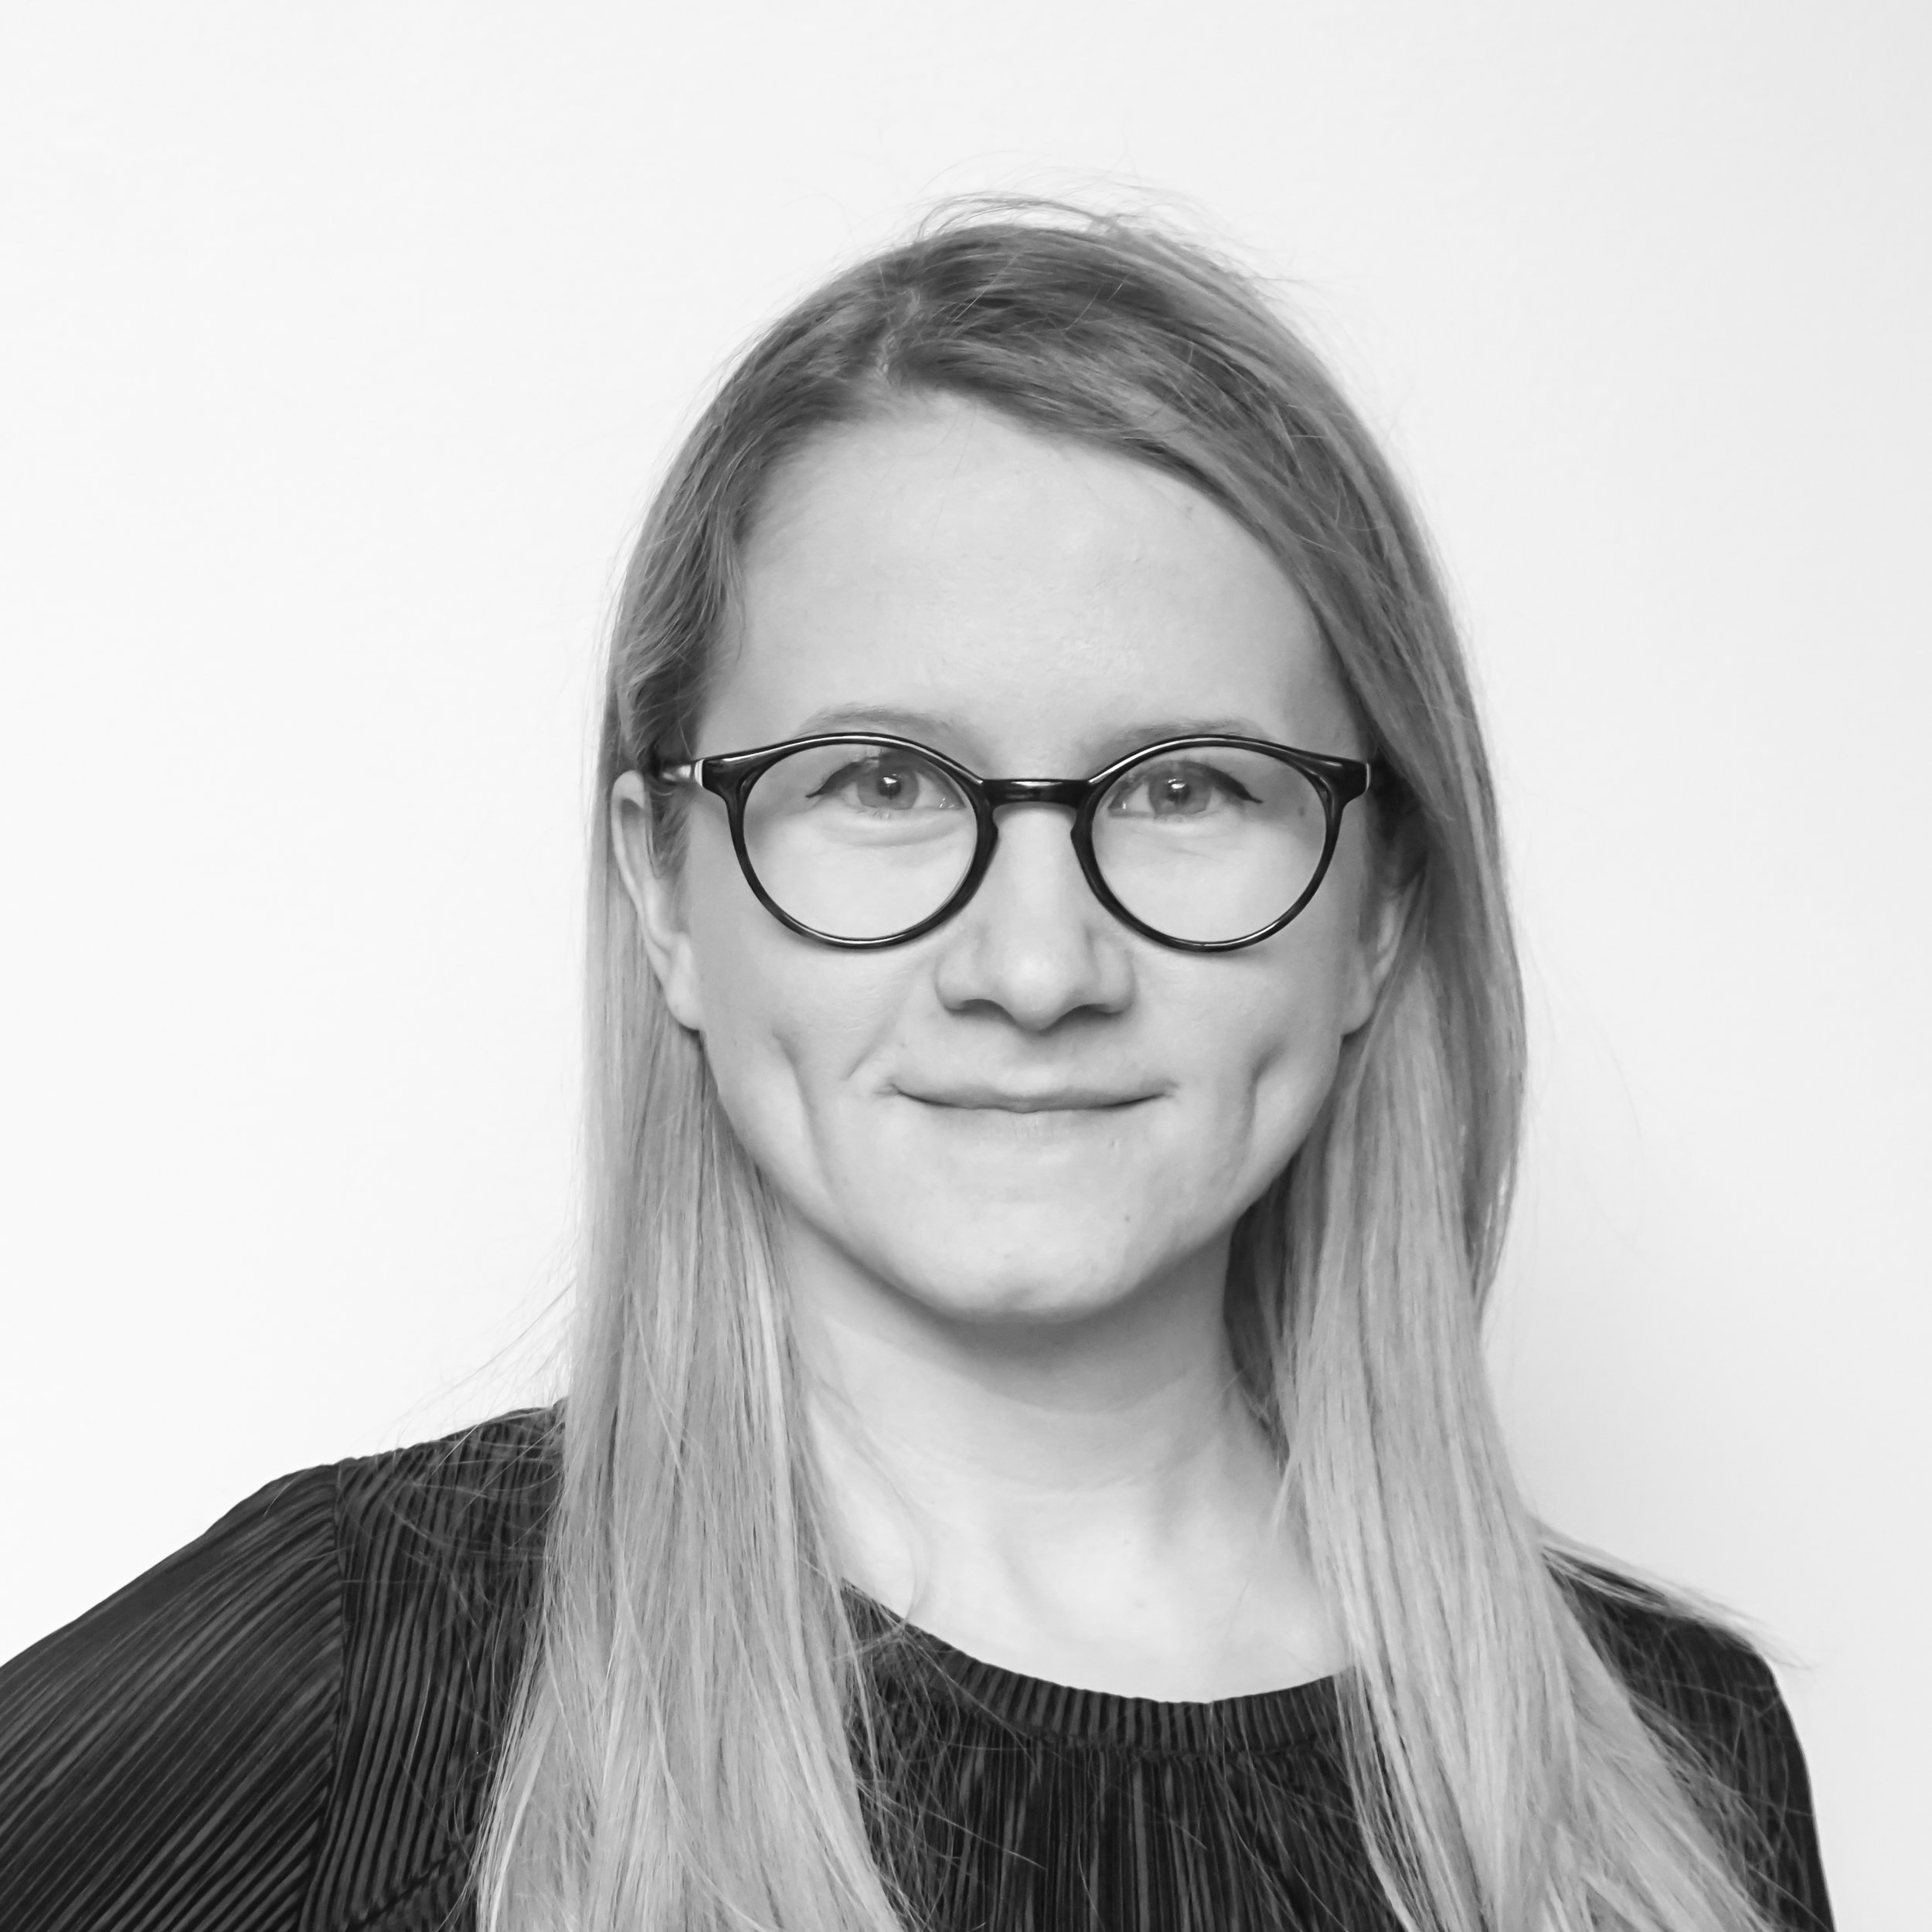 Kristina Shchetinina  - Office Manager  Kristina joined AndArchitects team in 2017. Originally from St Petersburg, Russia, she moved to UK in 2006 and graduated with a BA (Hons) in Graphic Design in 2013 from University of Southampton. Kristina has previous experience working as a photographer, marketeer and an administrator, contributing a wide variety of creative and organisational skills to the team.